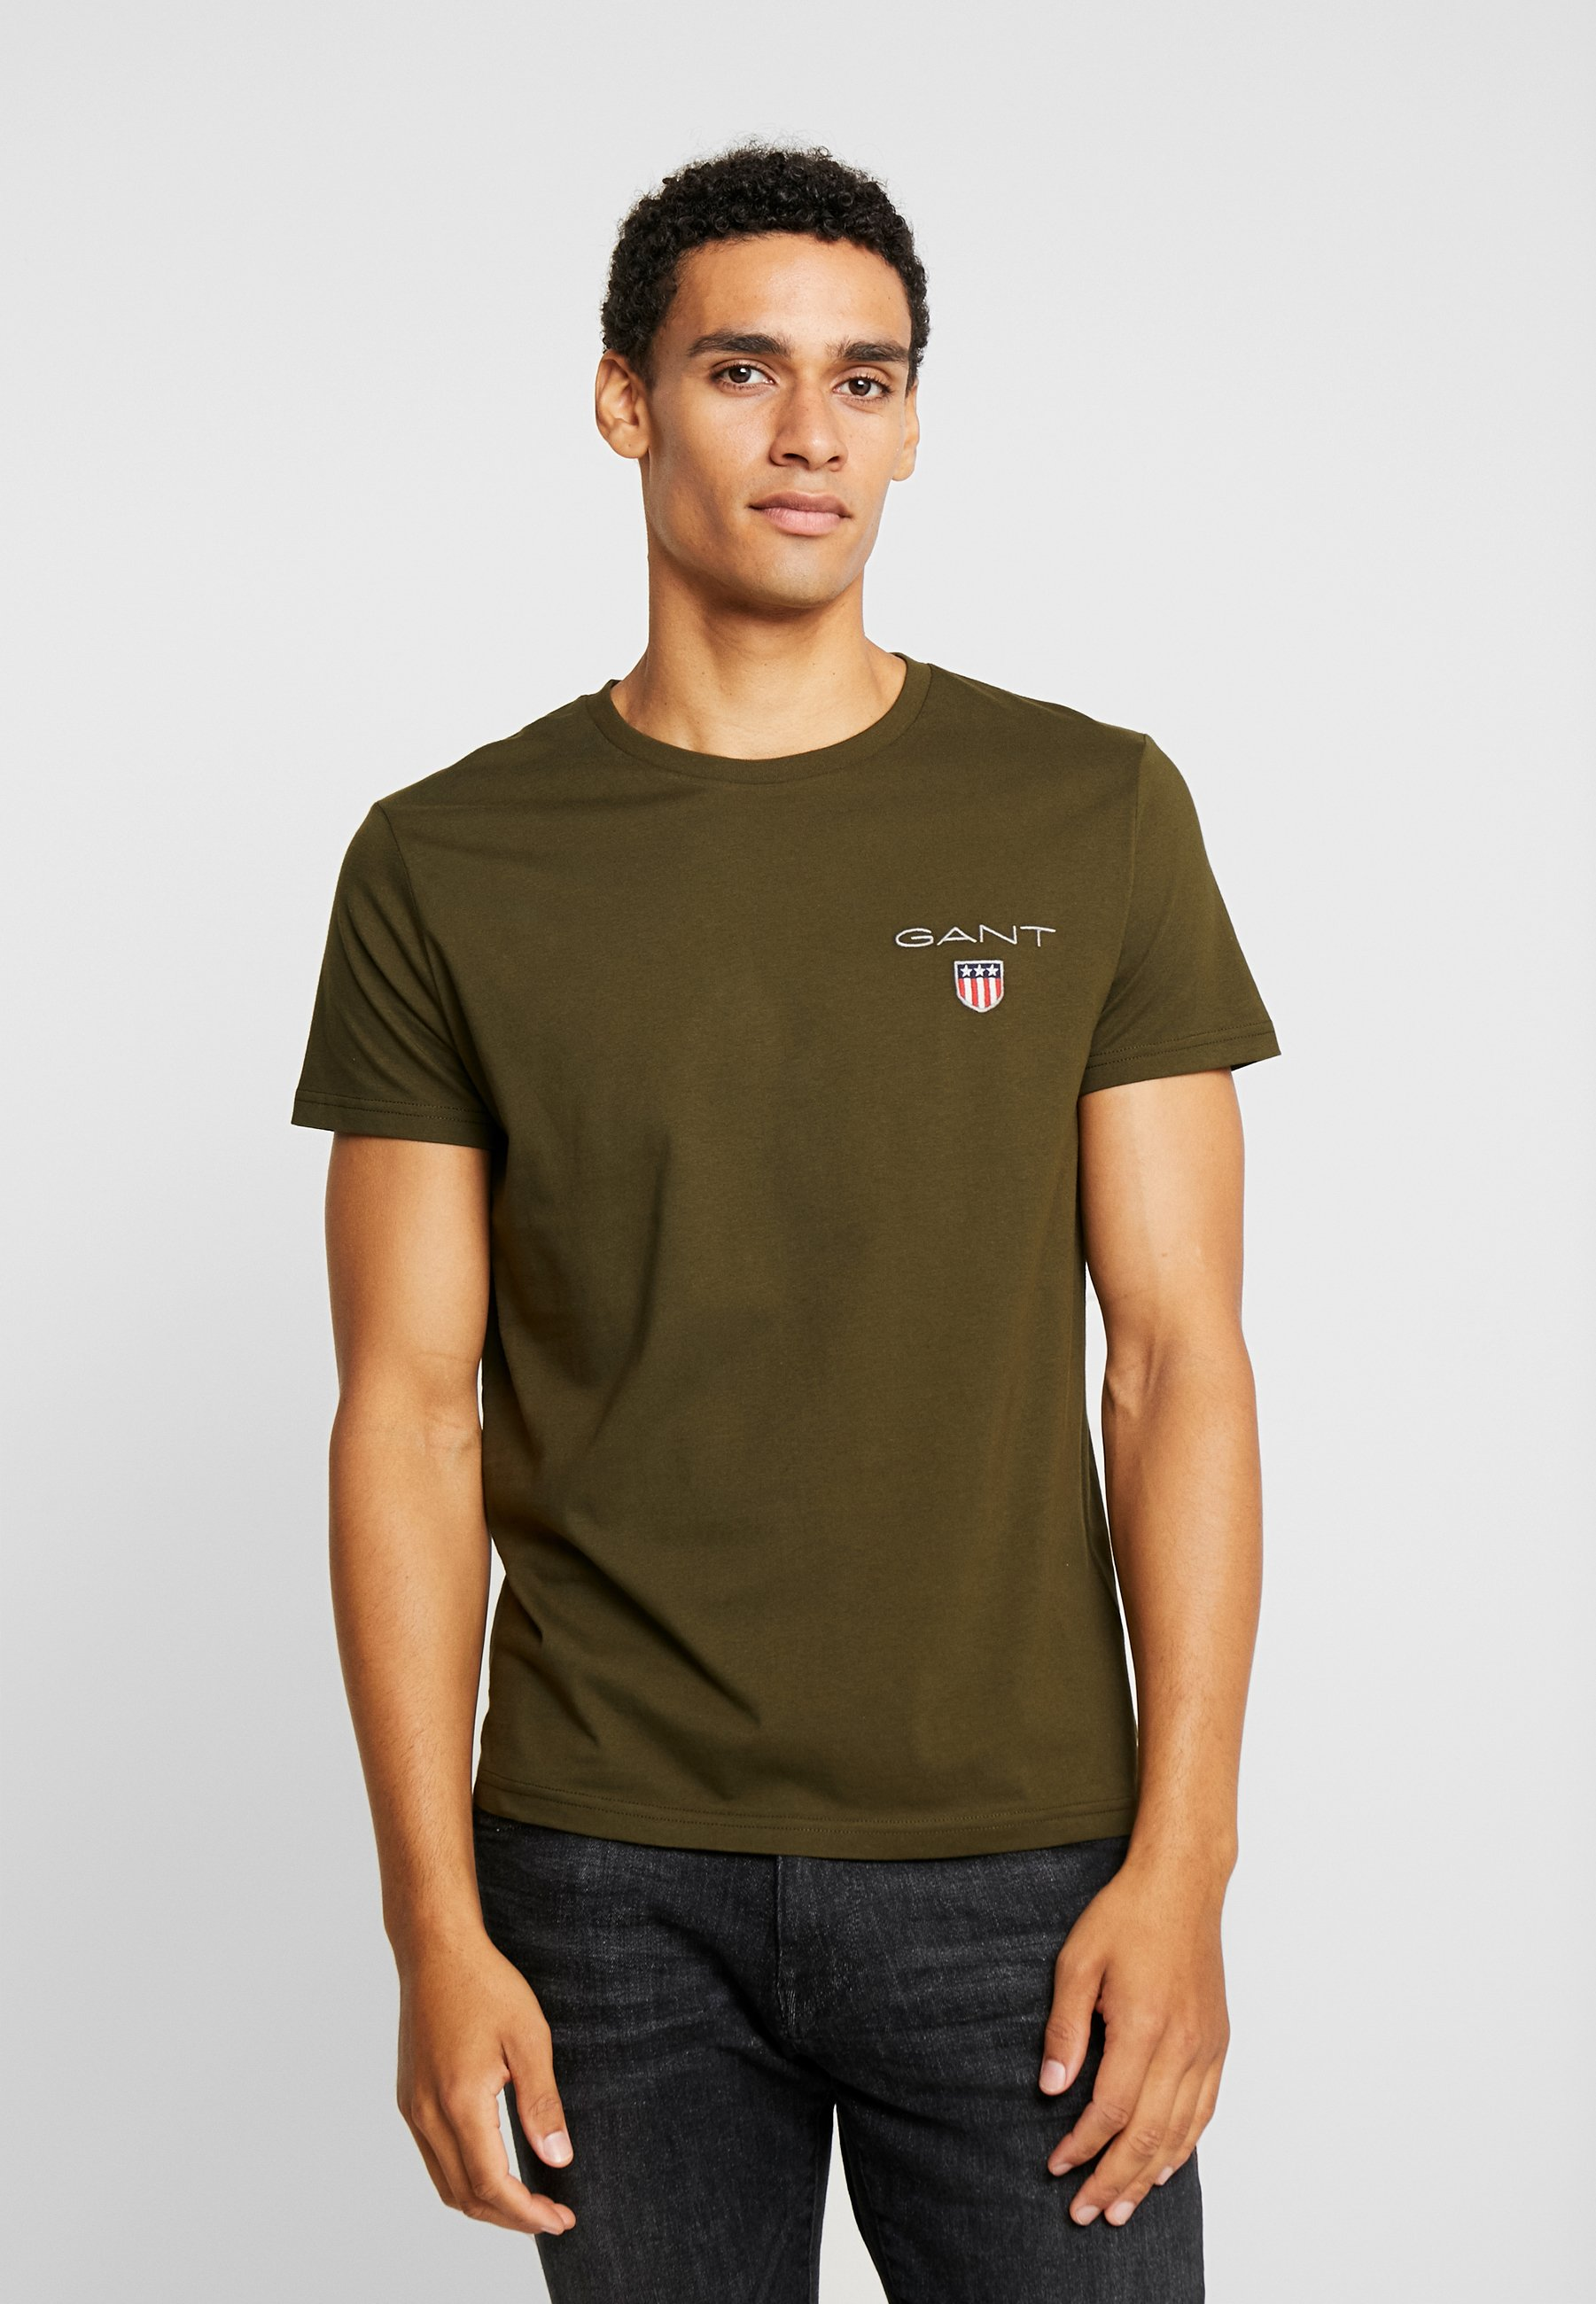 Green shirt Field ShieldT Medium Imprimé Gant yIvfYb76g